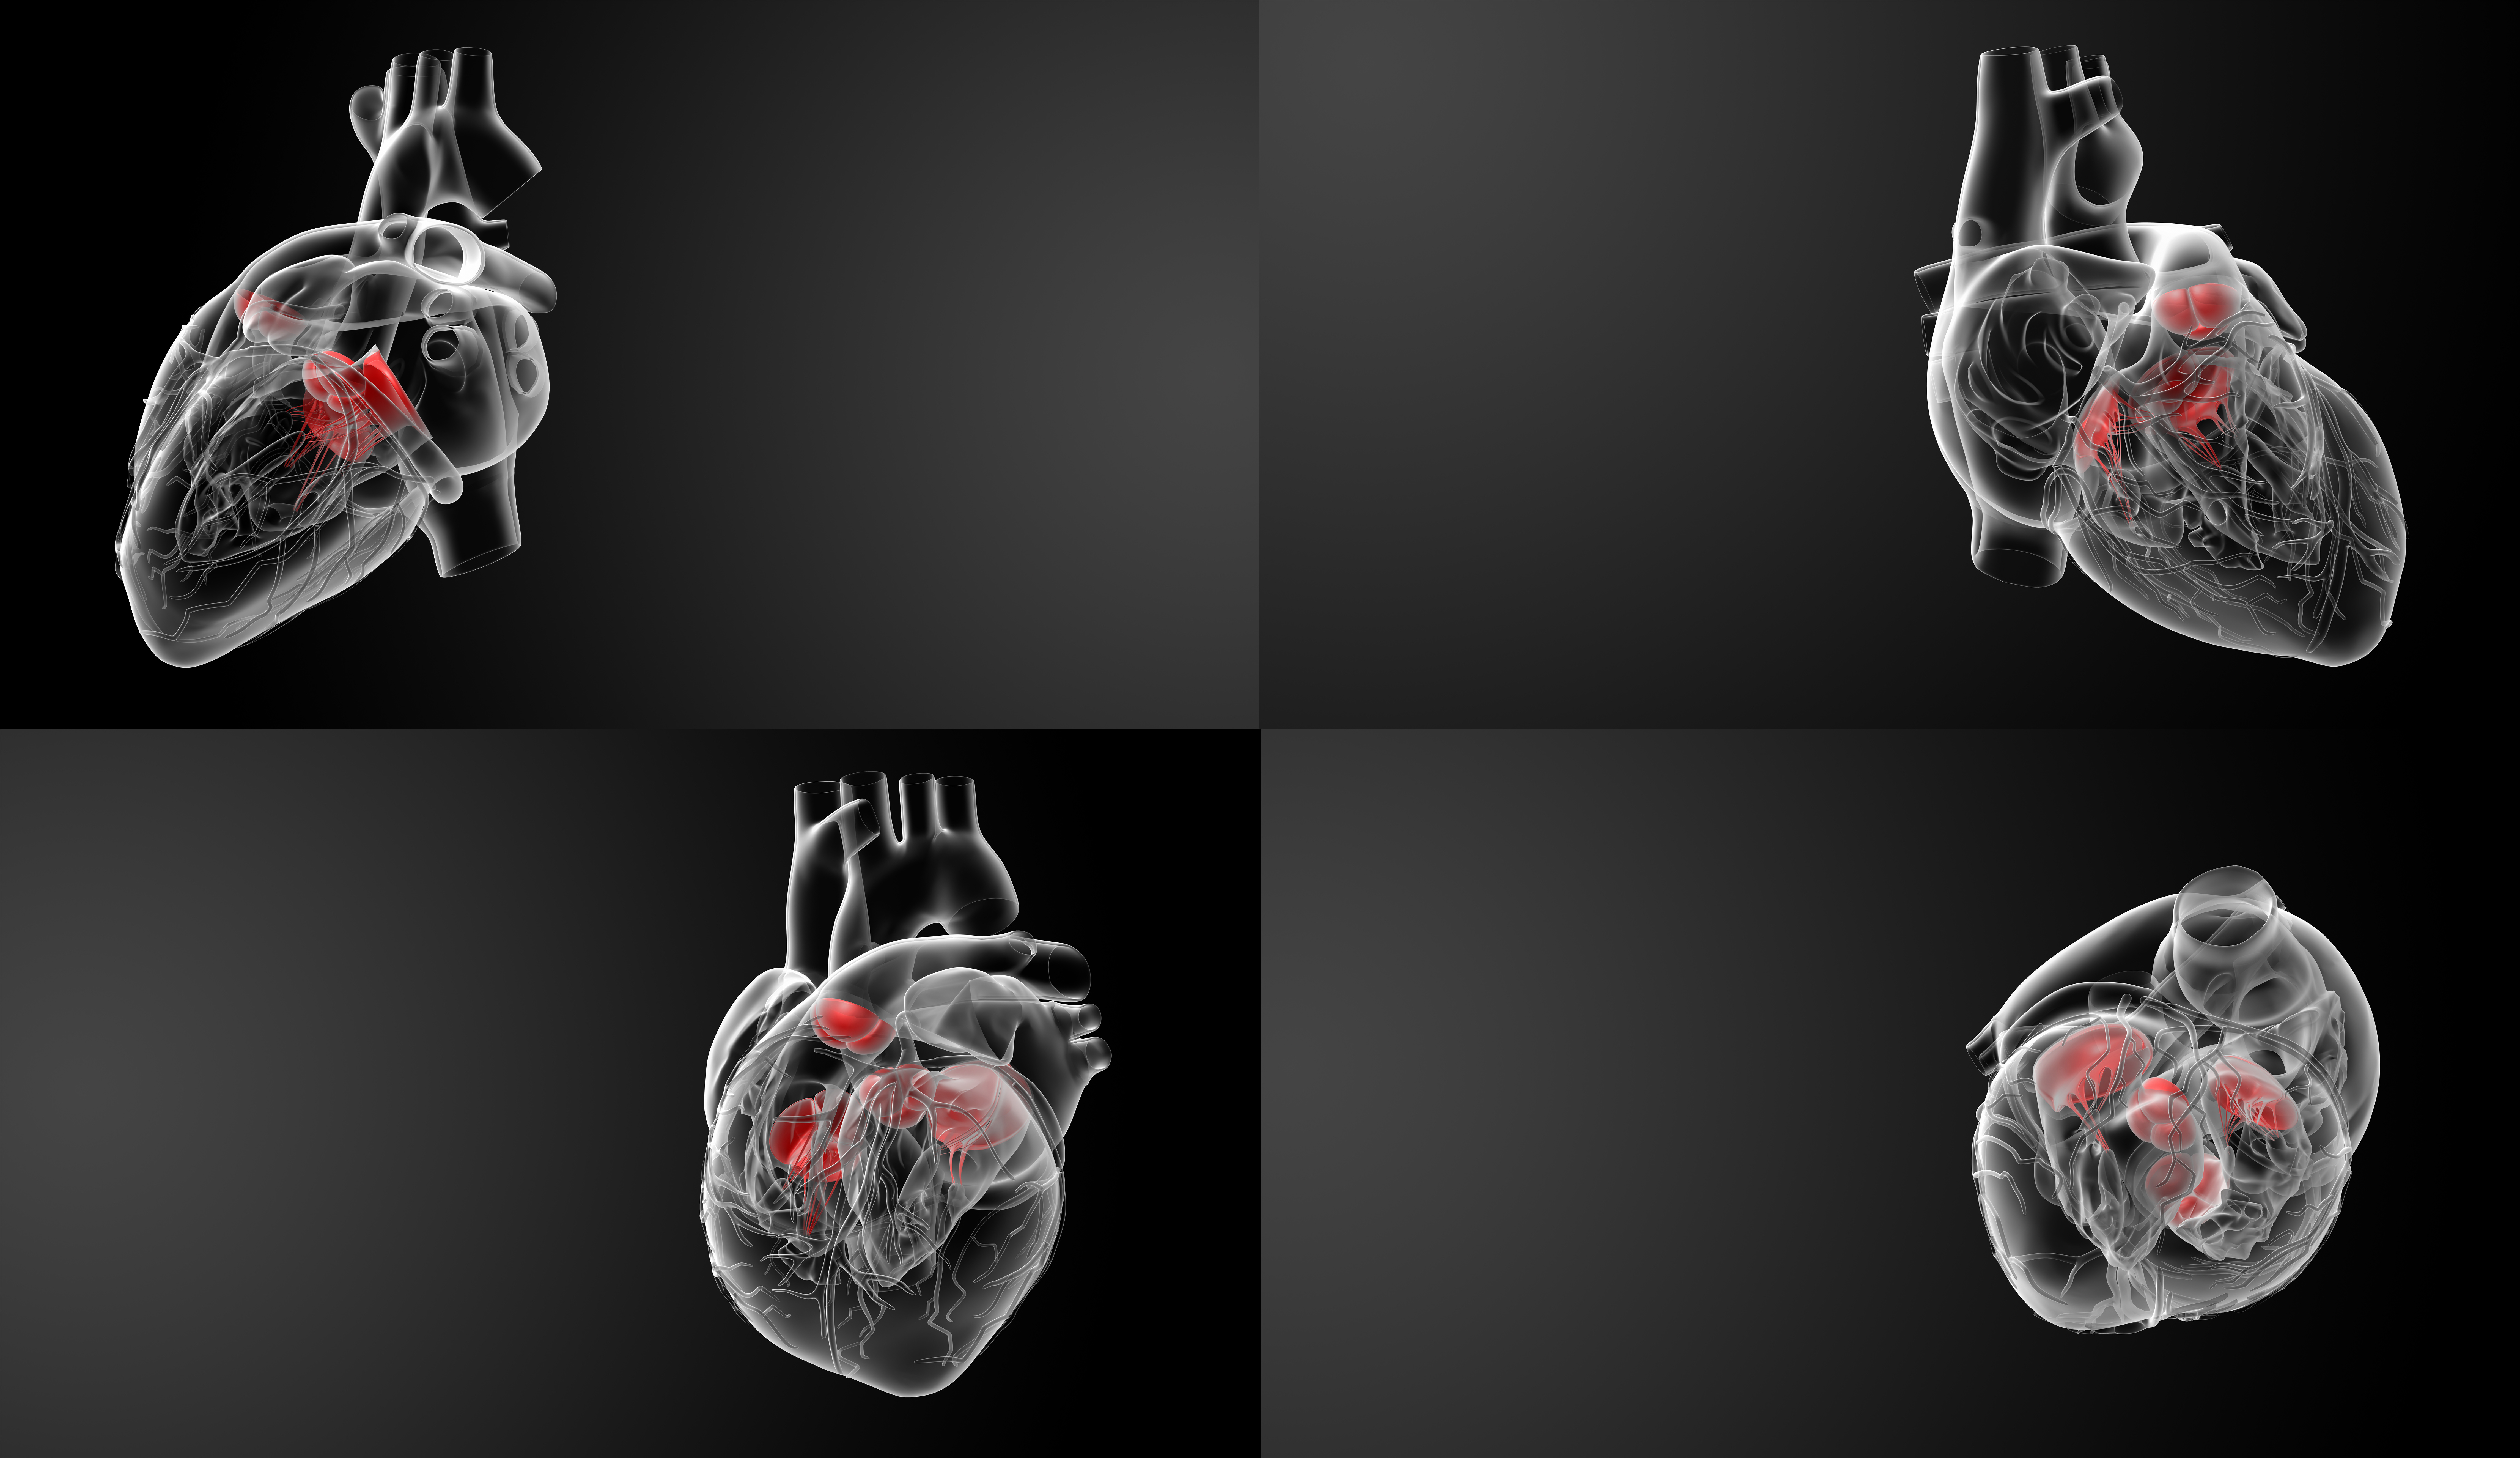 3D rendering of the Heart valve